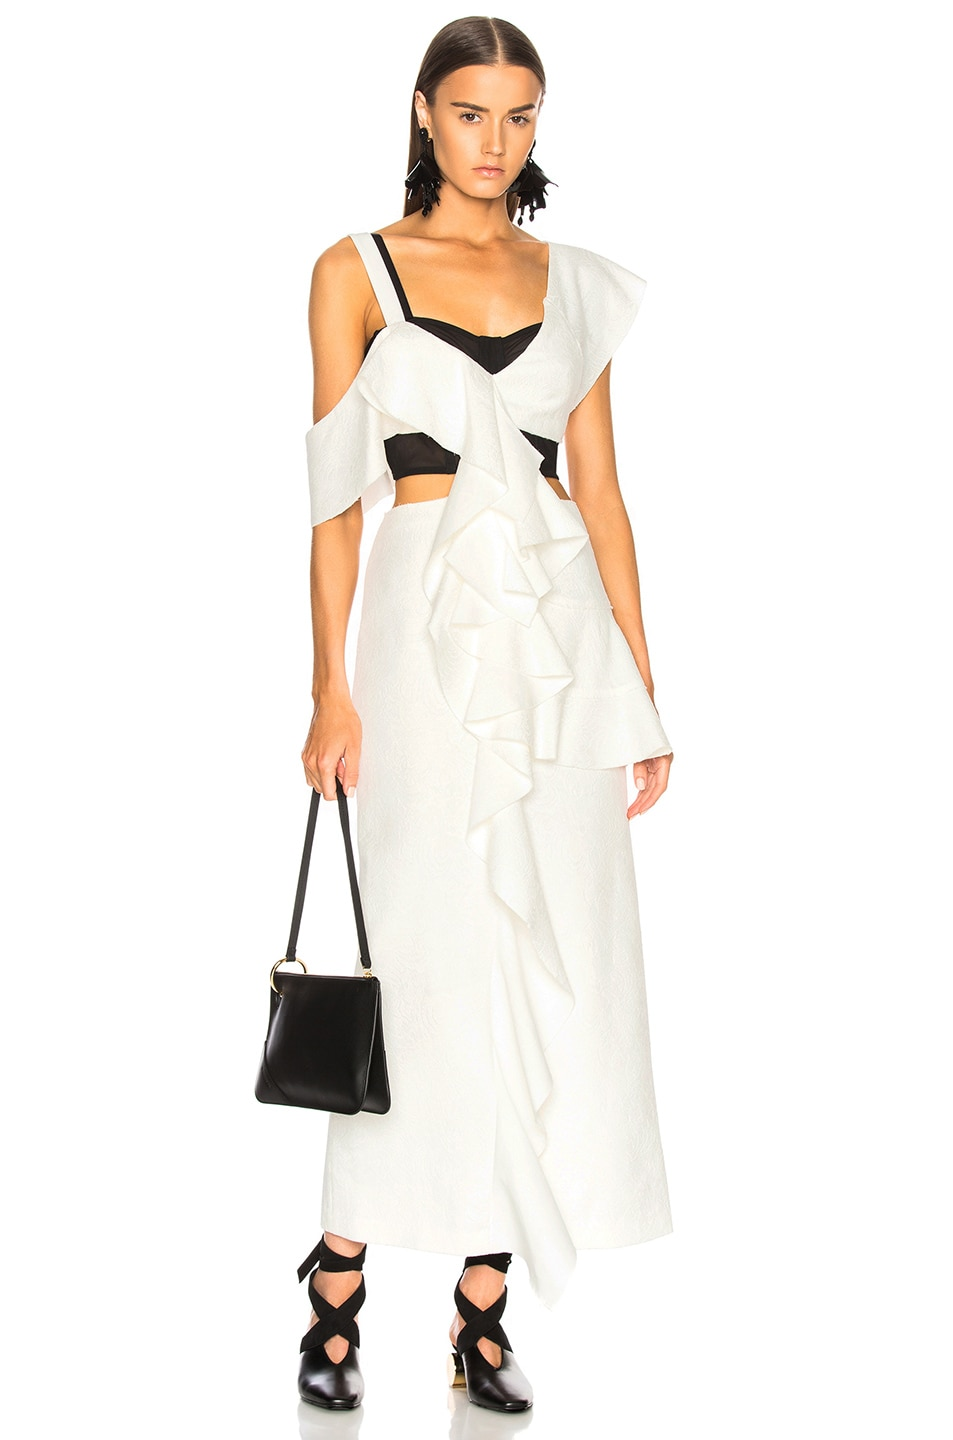 Proenza Schouler One Shoulder Long Ruffle Dress in Black,White